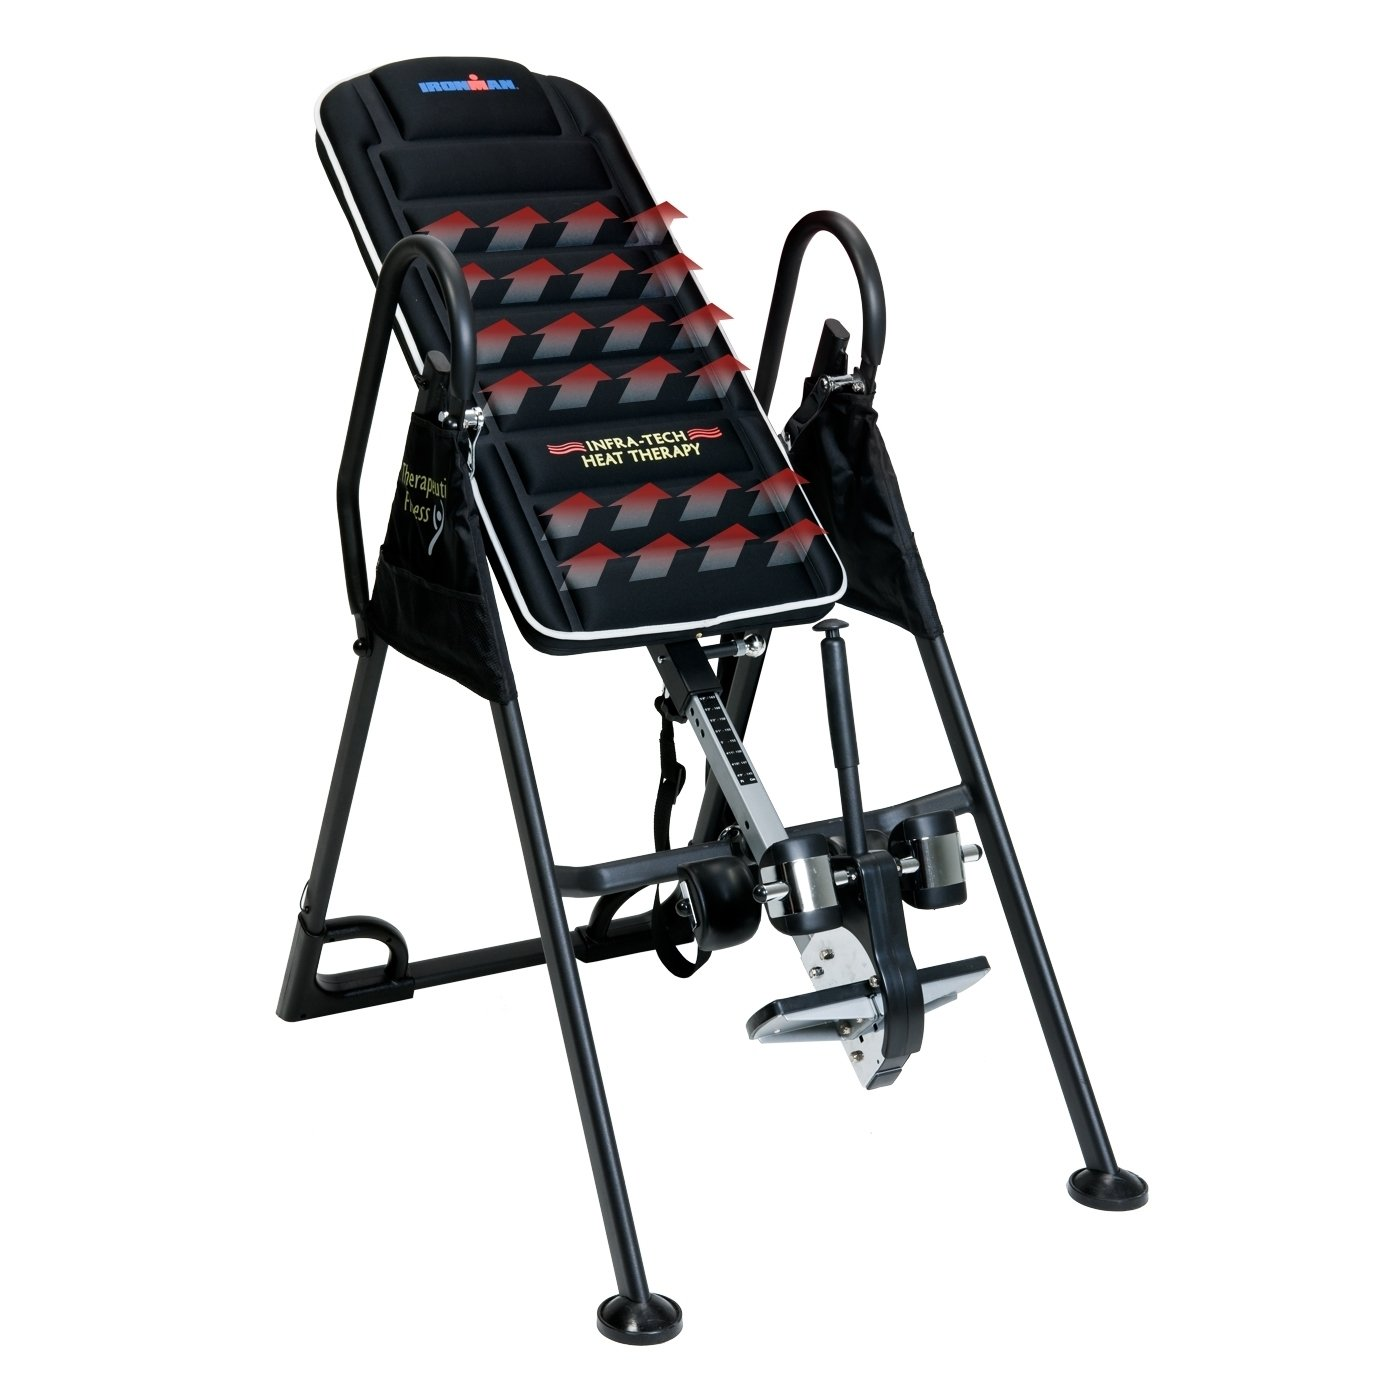 ronman IFT 4000 Infrared Therapy Inversion Table